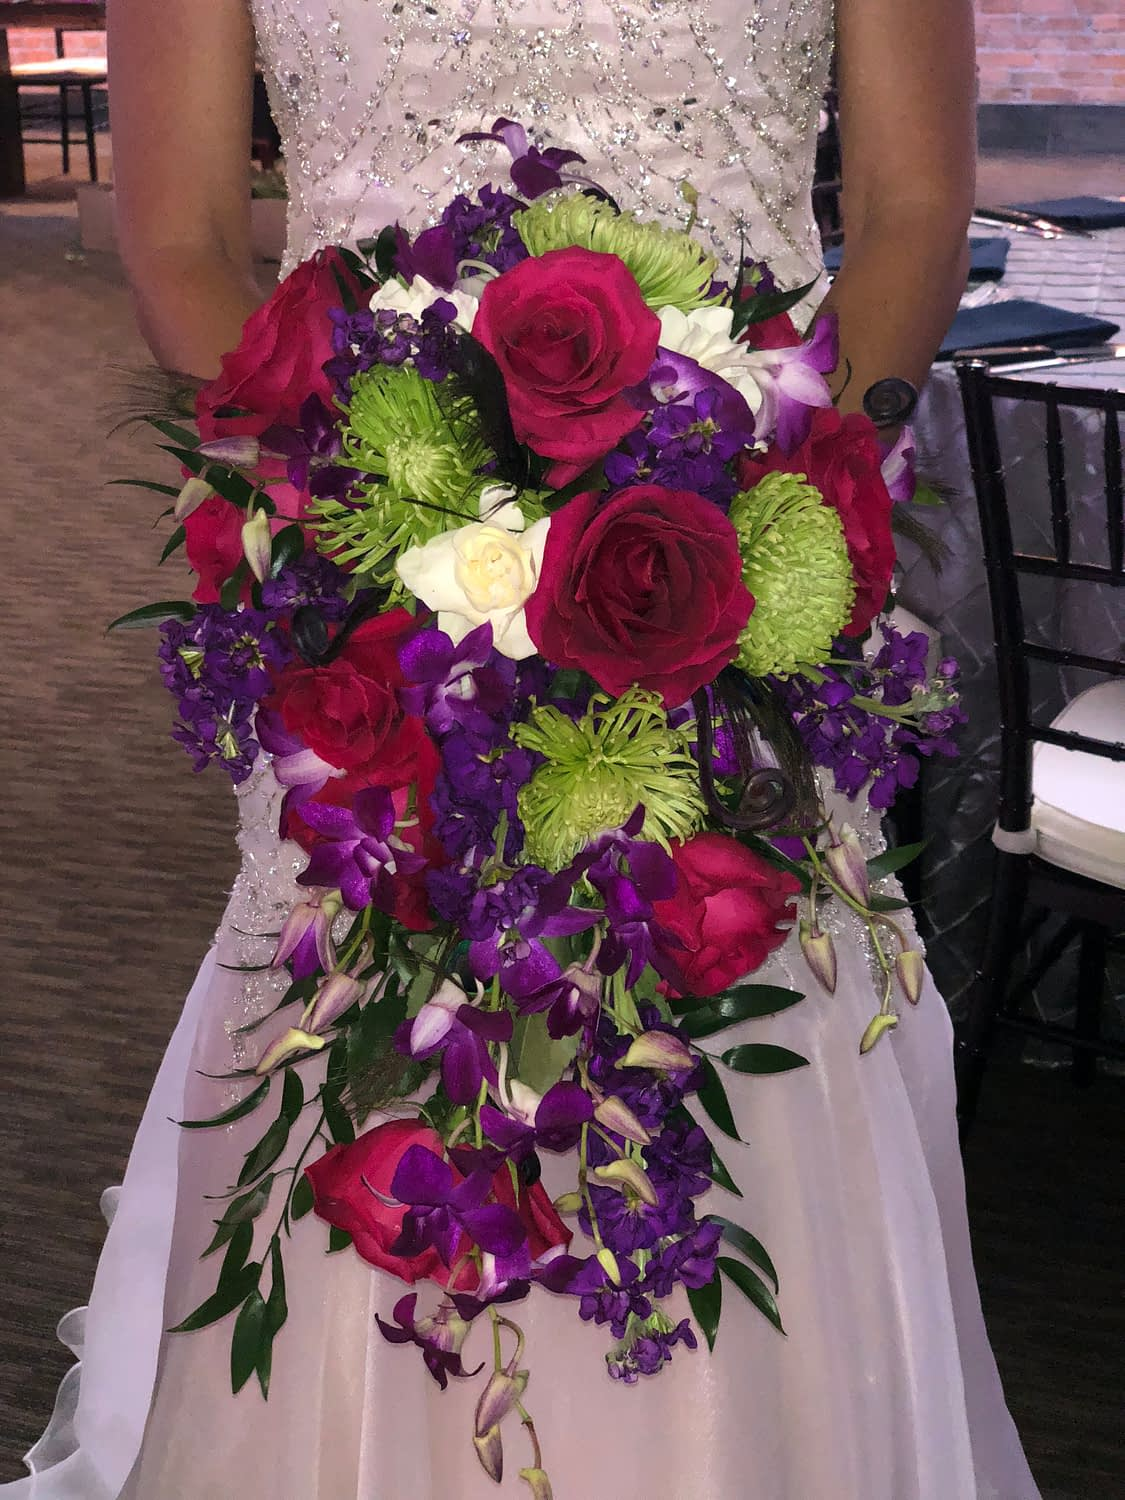 minneapolis event center wedding bridal bouquet